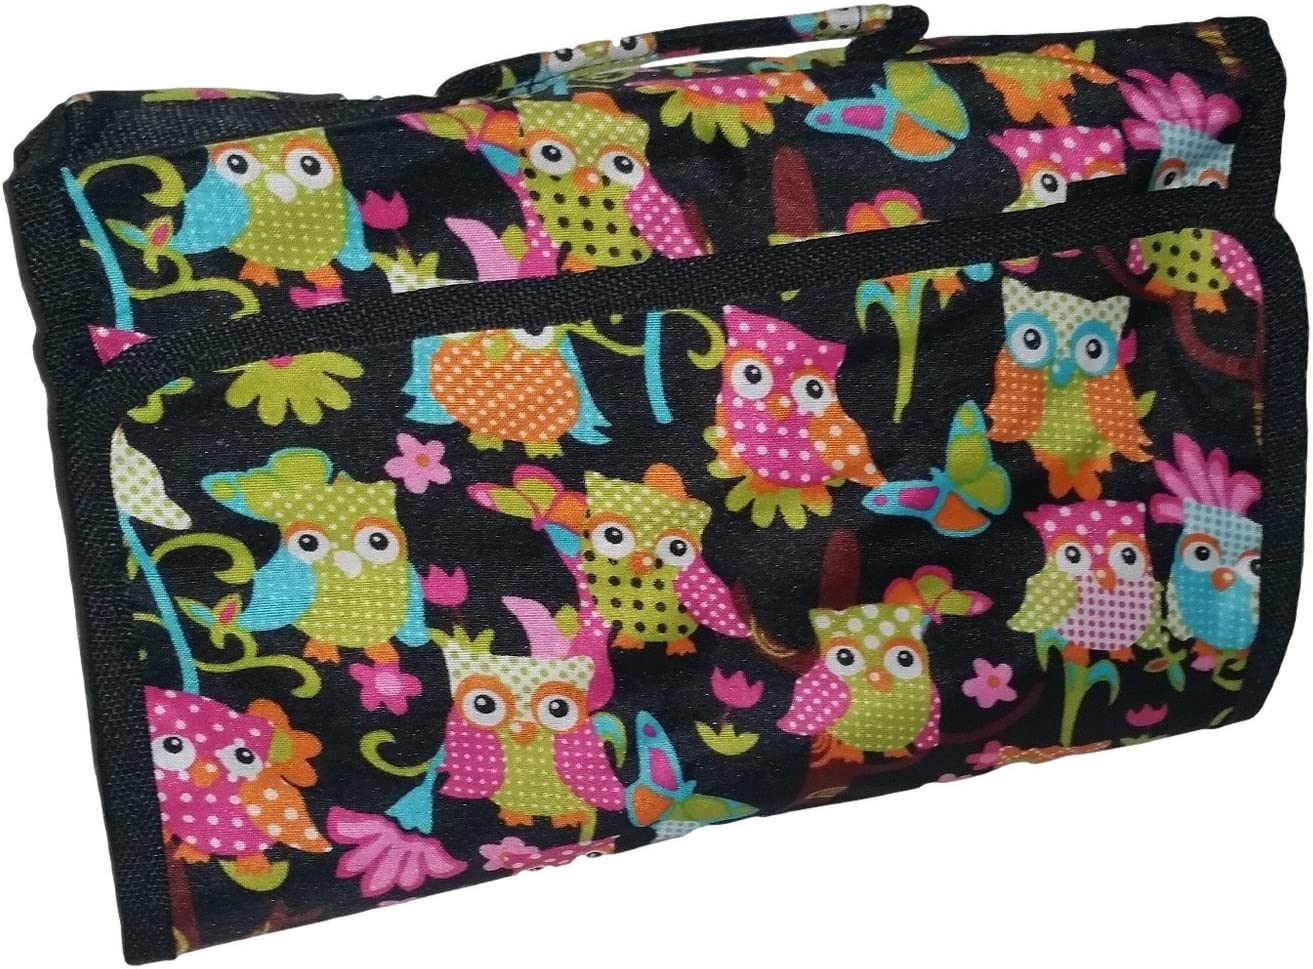 Large Hanging Toiletry Cosmetic Organizer Bag – Roll up for Storage and Travel Multi-Colored Owl